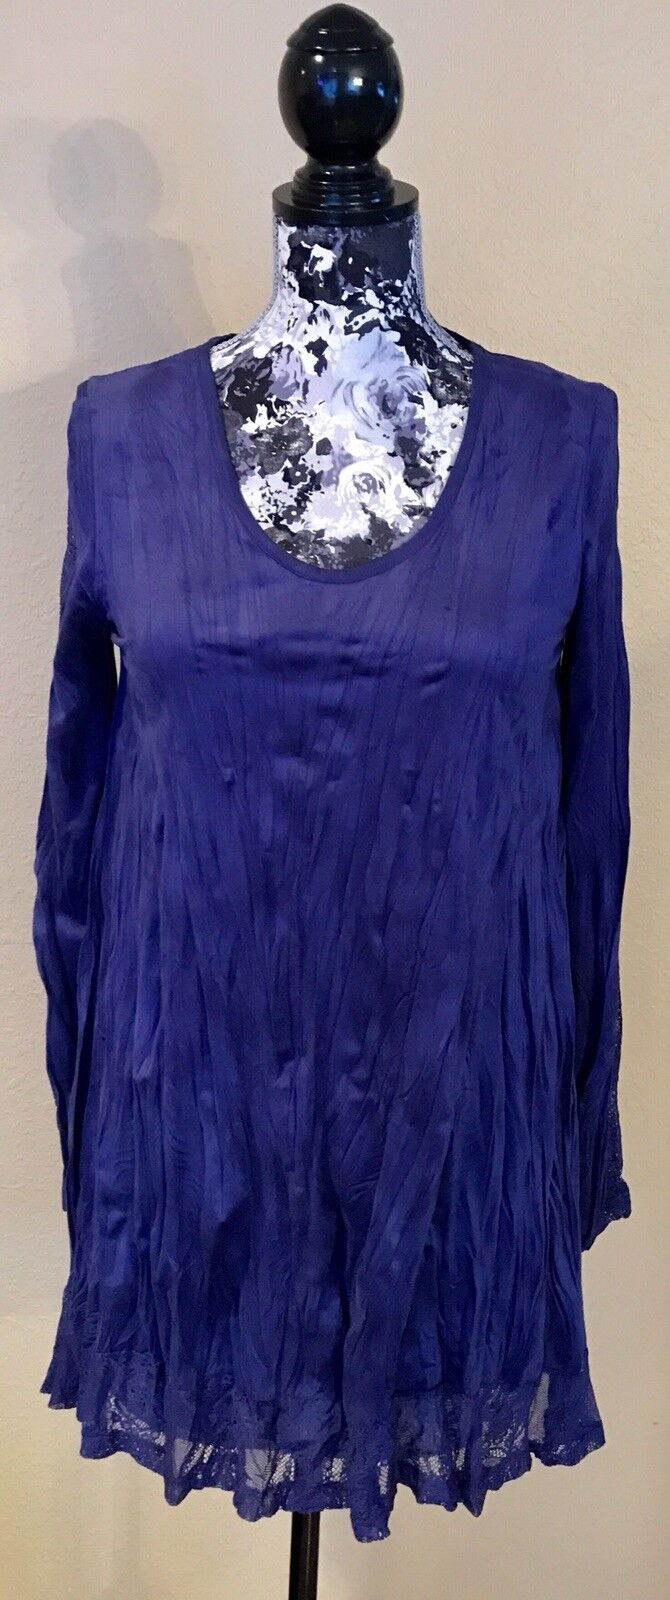 Beautiful French LAUREN VIDAL Größe XS Iris Suede Blend Tunic Dress orig.